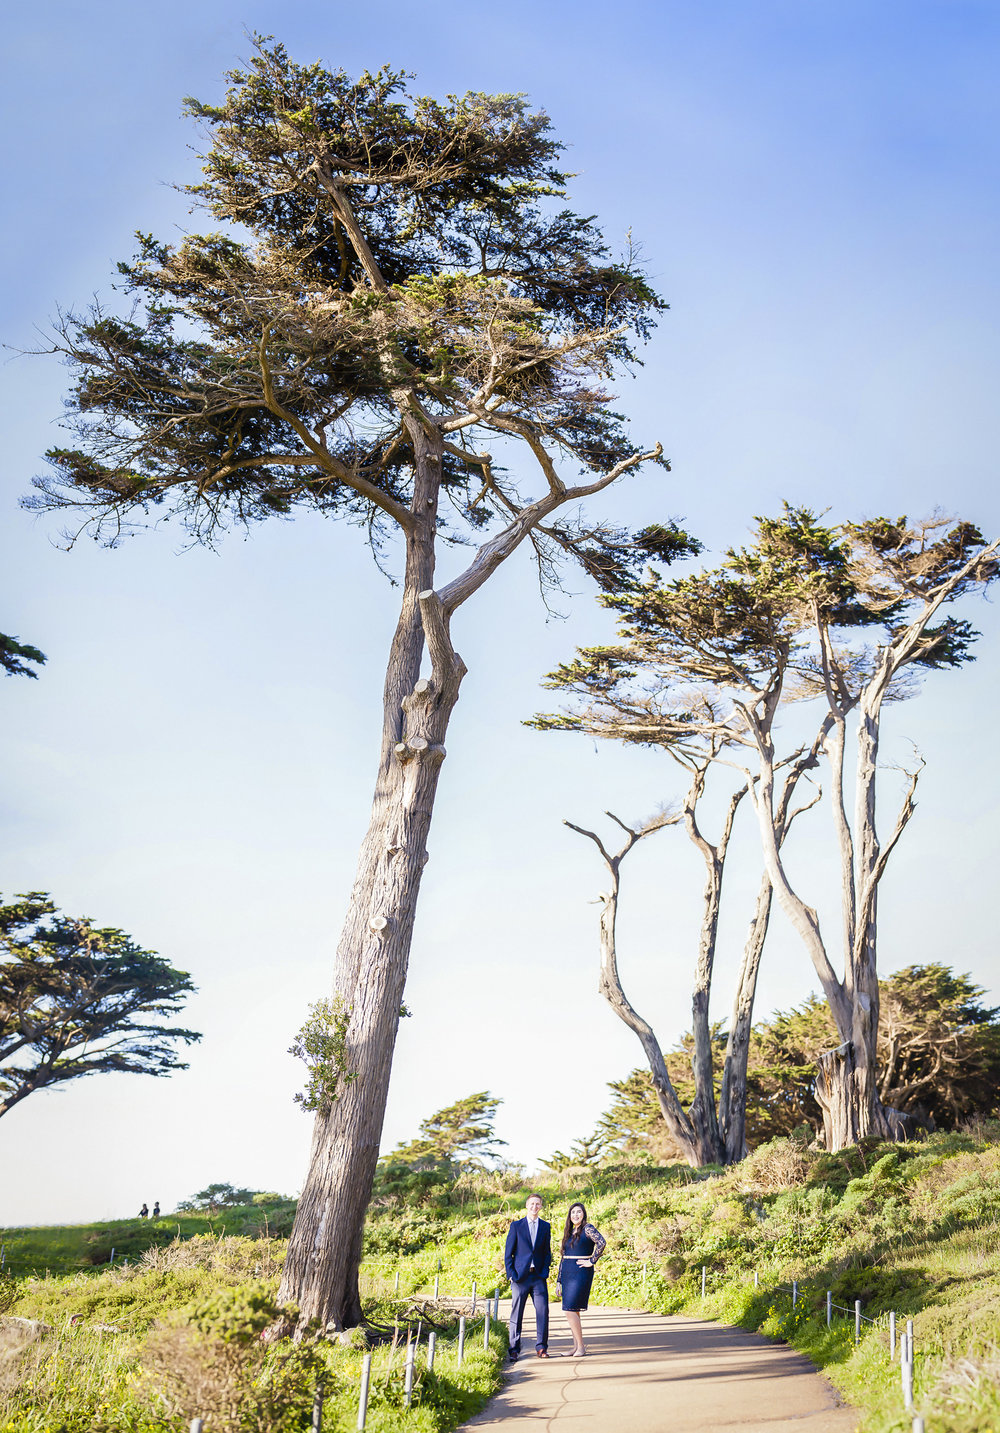 abigail-stephen-engagement-session-lands-end-san-francisco-tall-tree-1.jpg